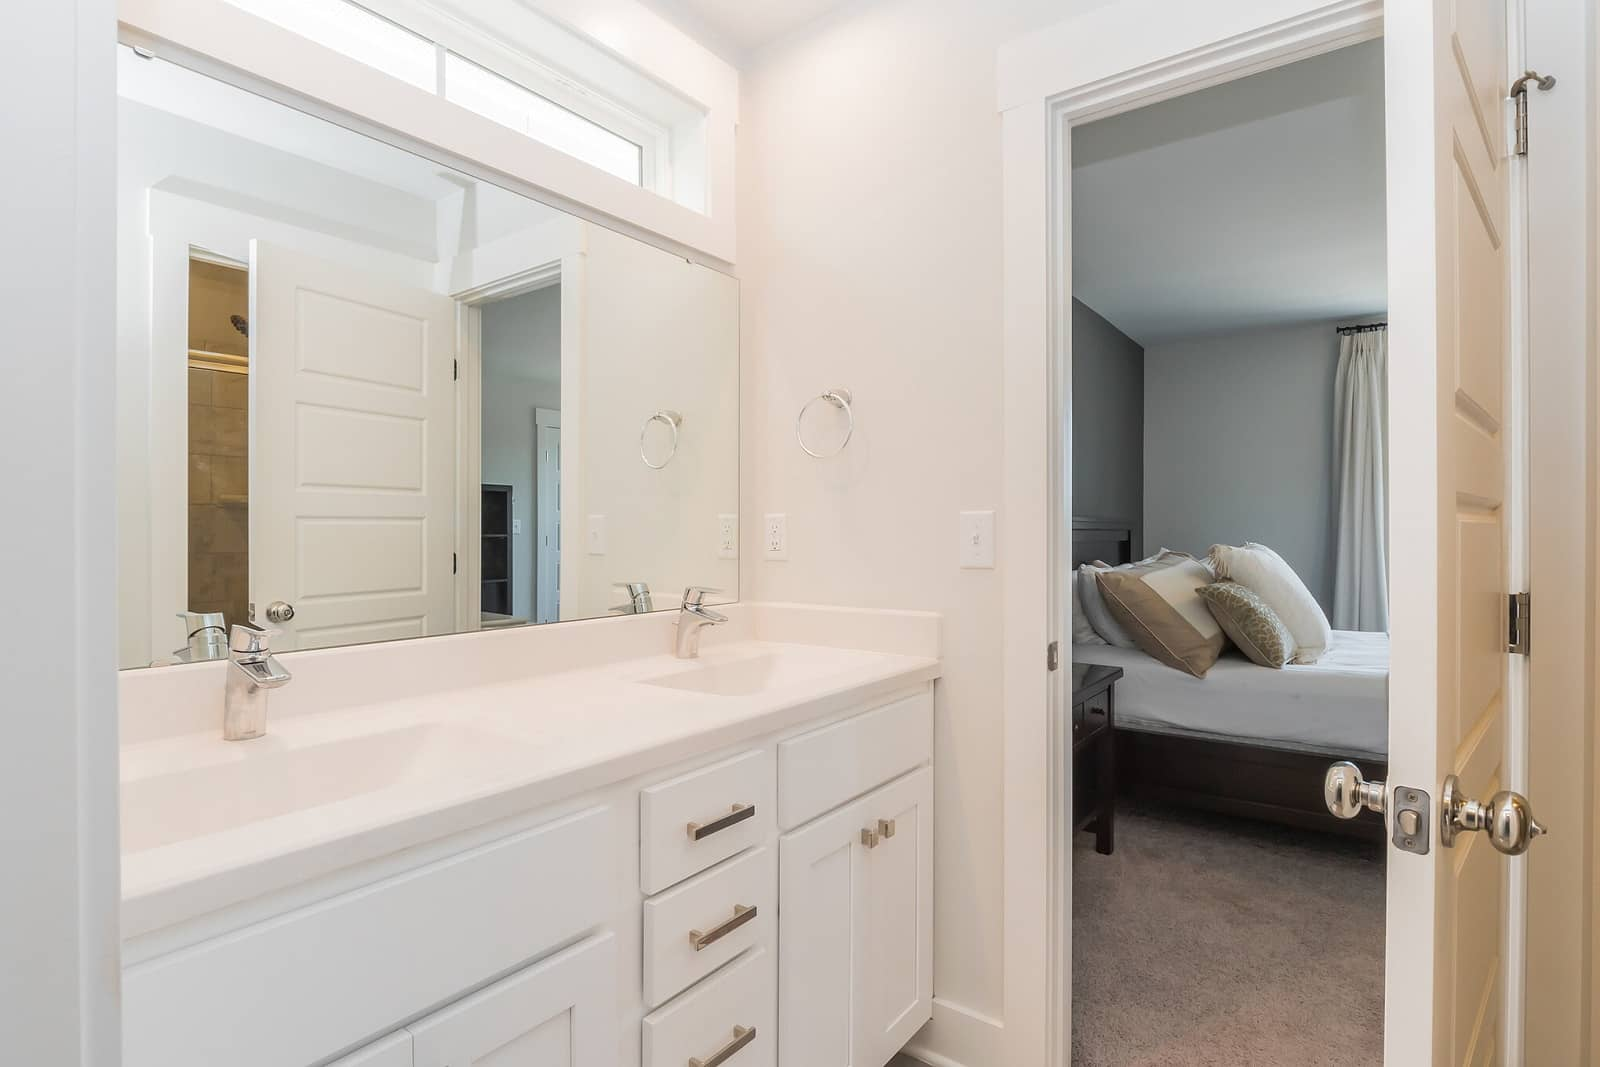 Real Estate Photography in Chapel Hill - NC - USA - Bathroom View